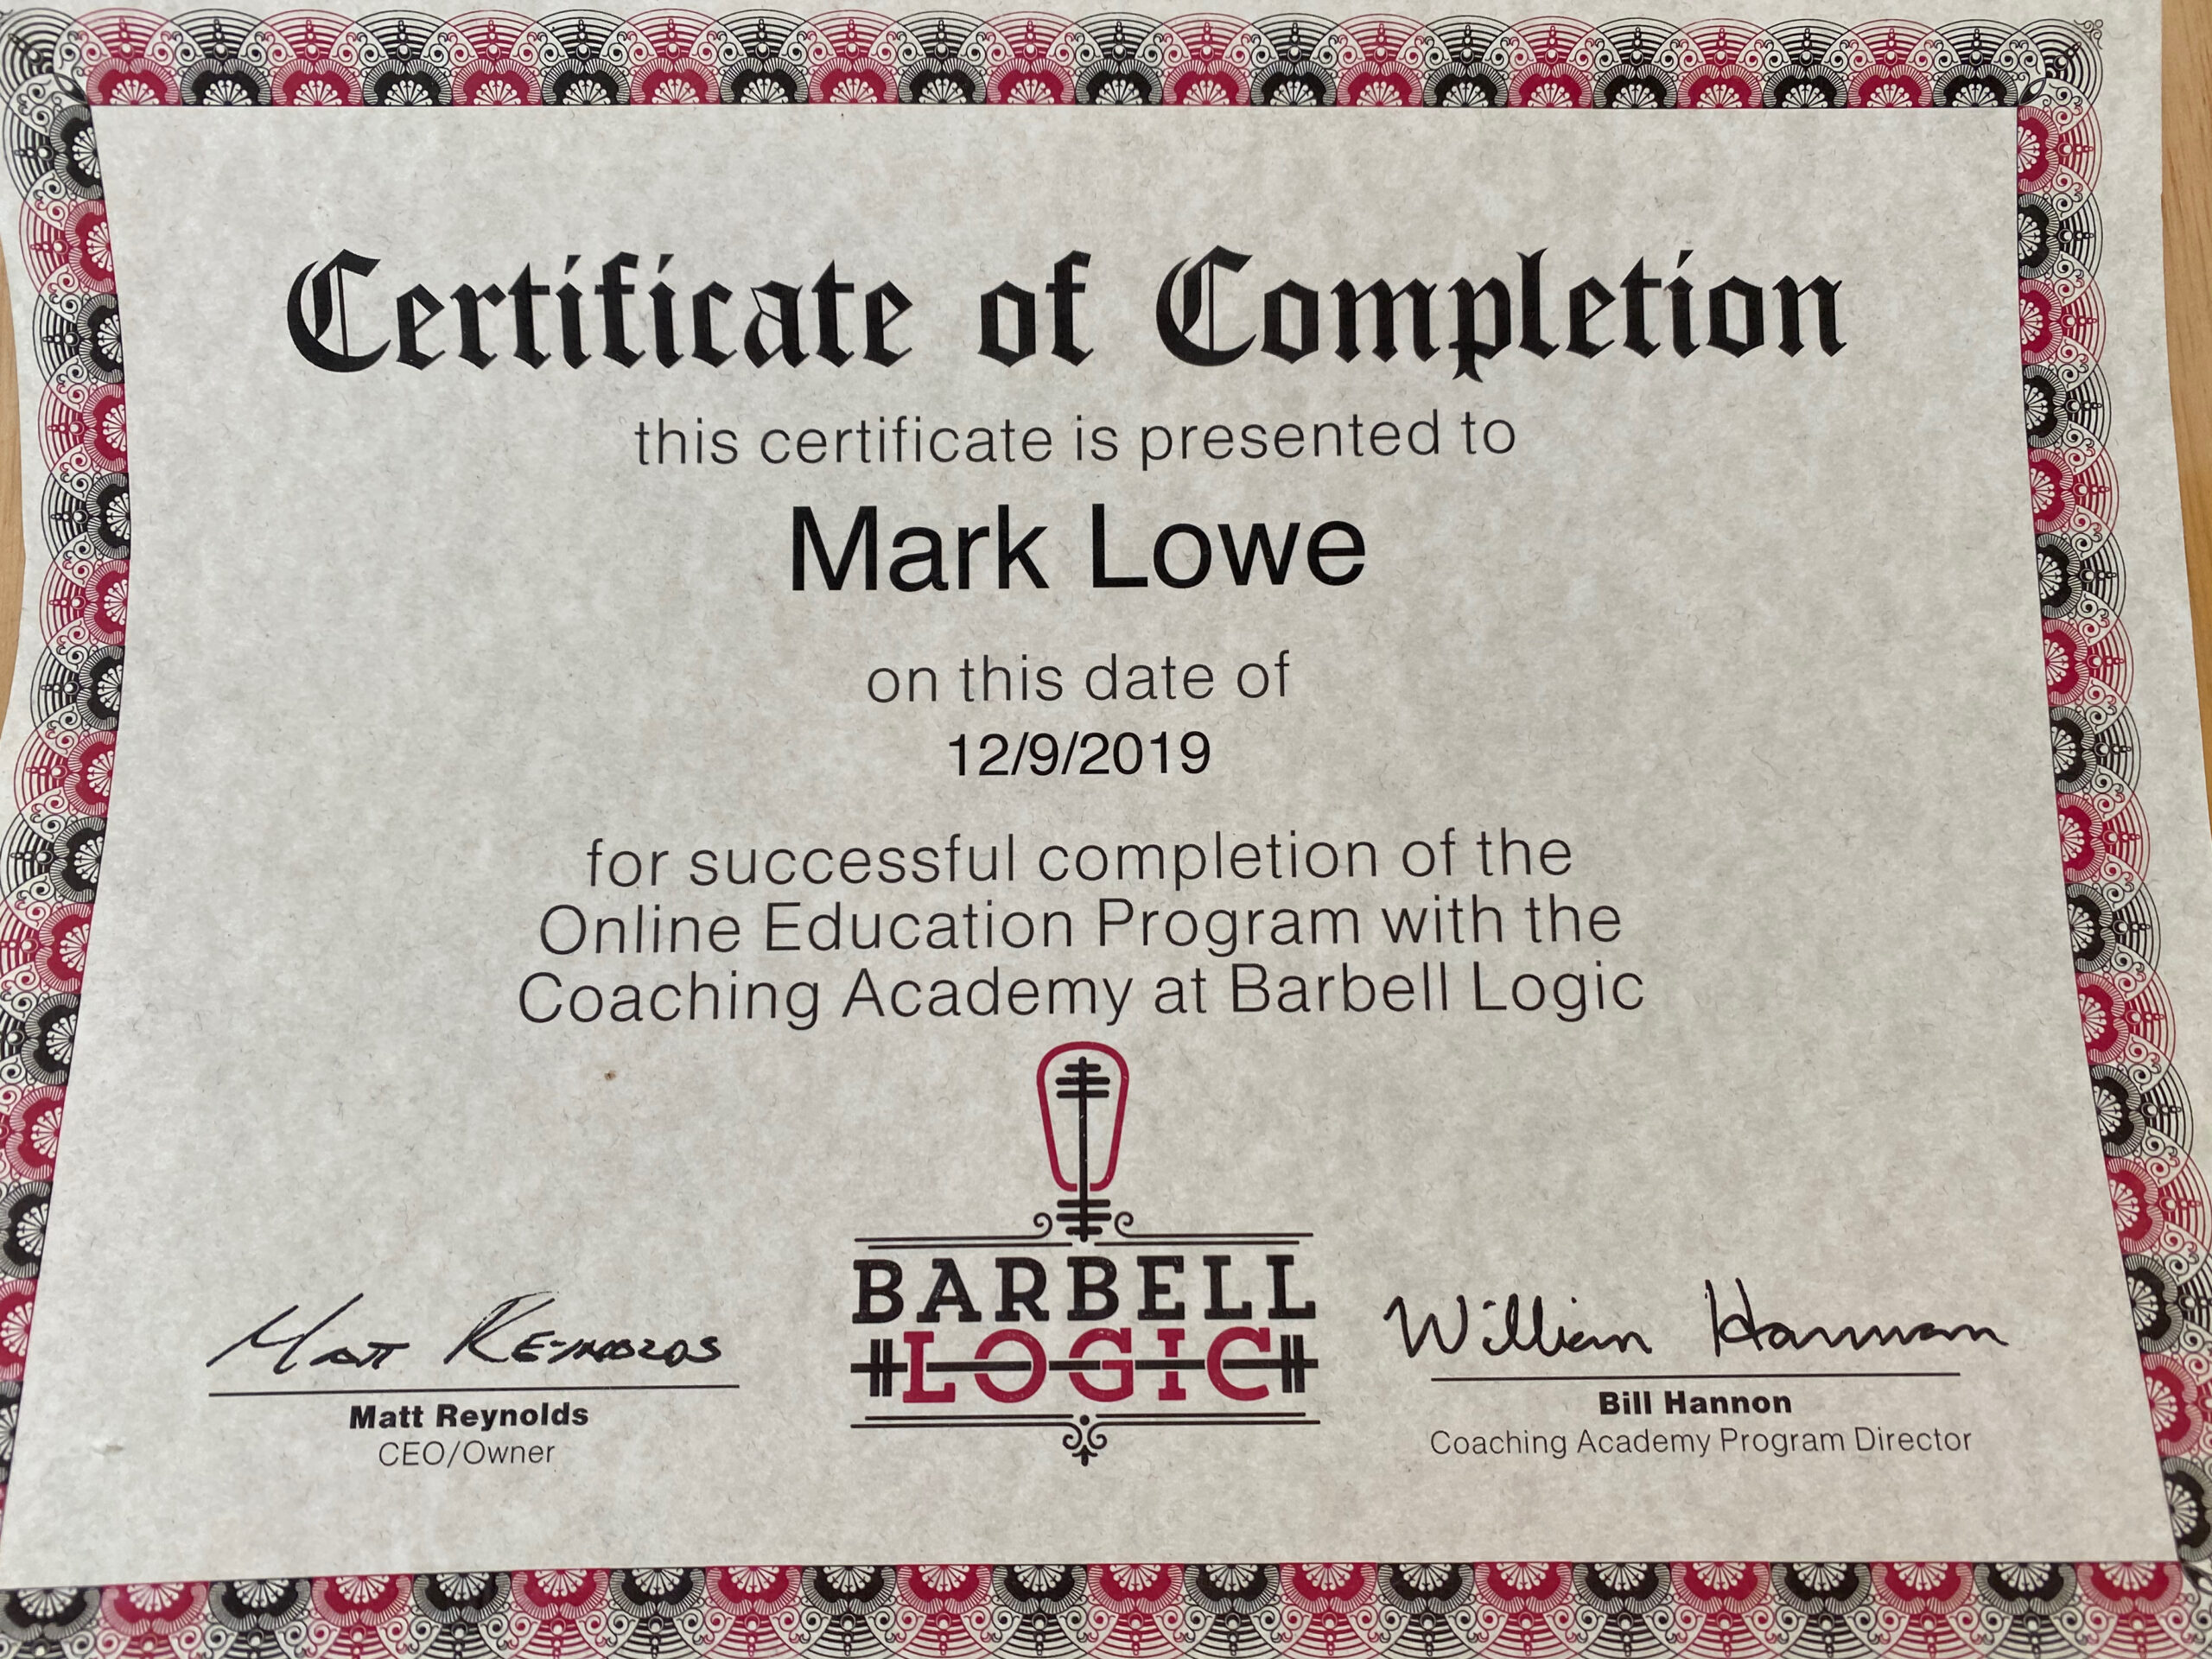 Barbell Logic Coaching Academy - Mark Lowe